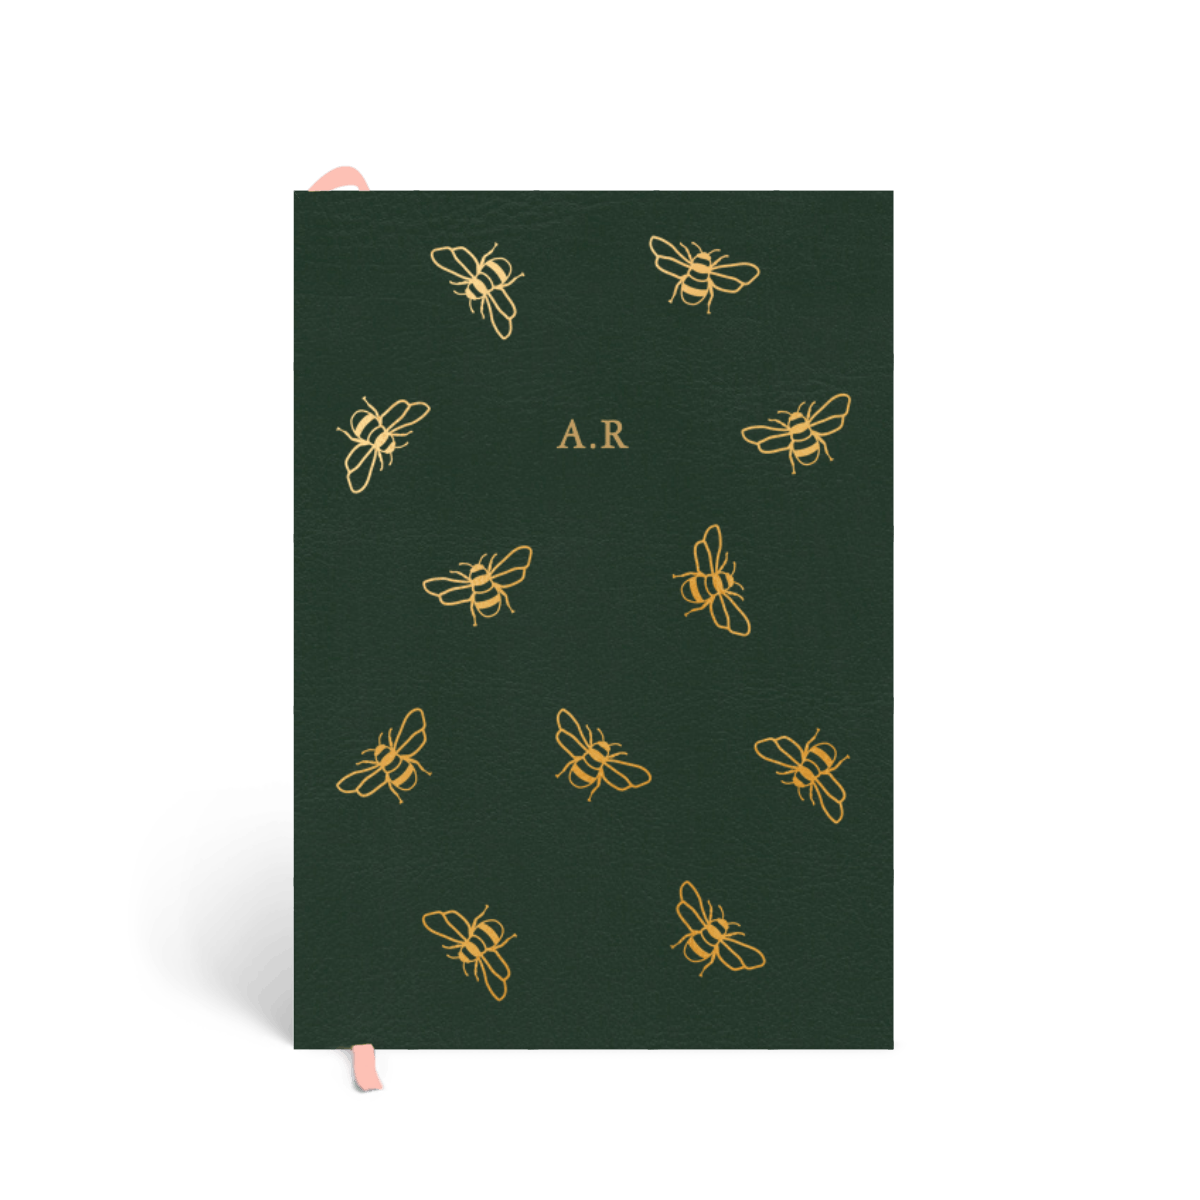 Https%3a%2f%2fwww.papier.com%2fproduct image%2f99144%2f112%2fpine green bee 25253 front 1579084882.png?ixlib=rb 1.1